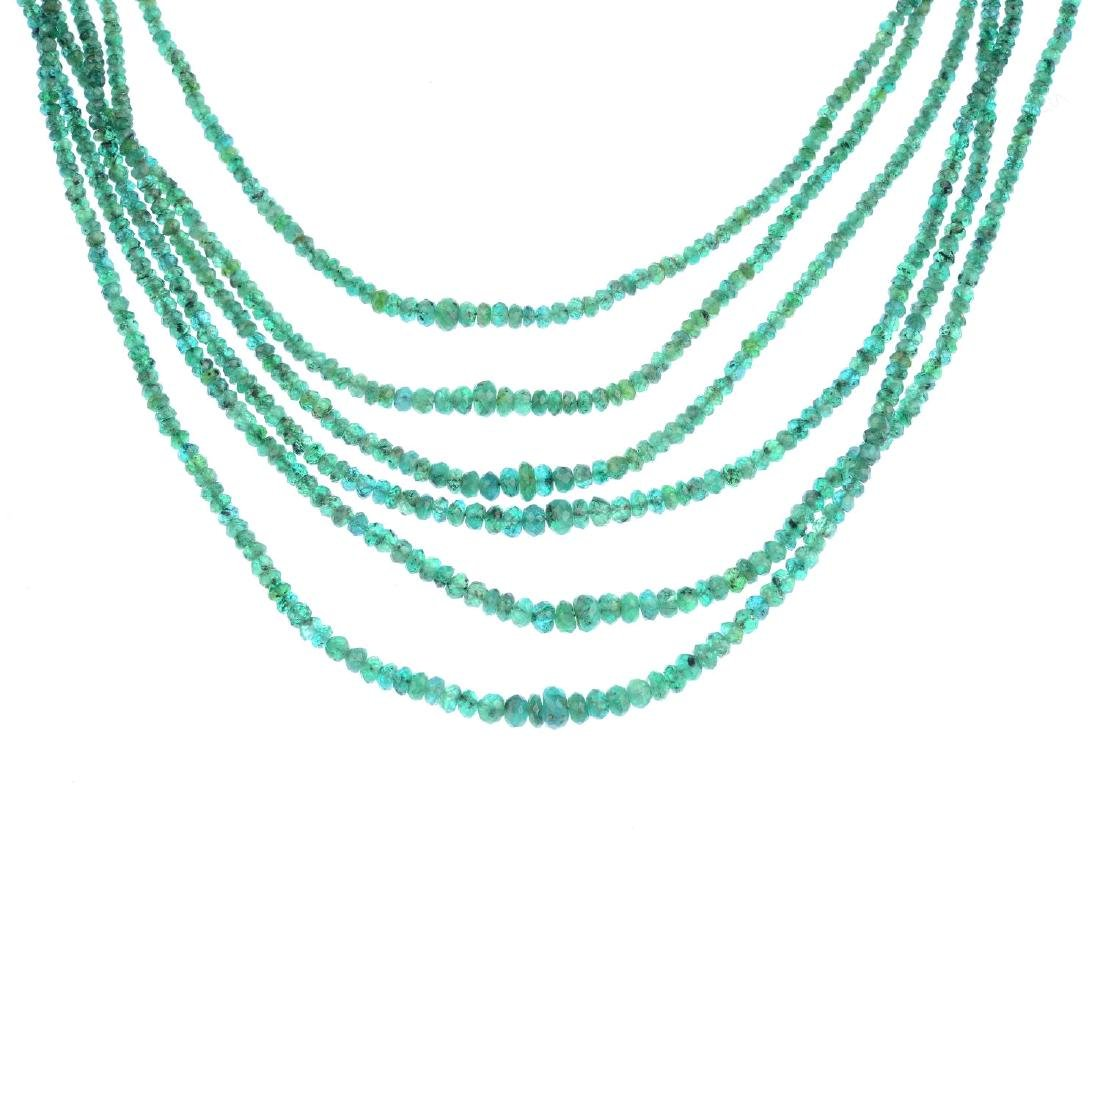 An emerald necklace. Comprising six strands of